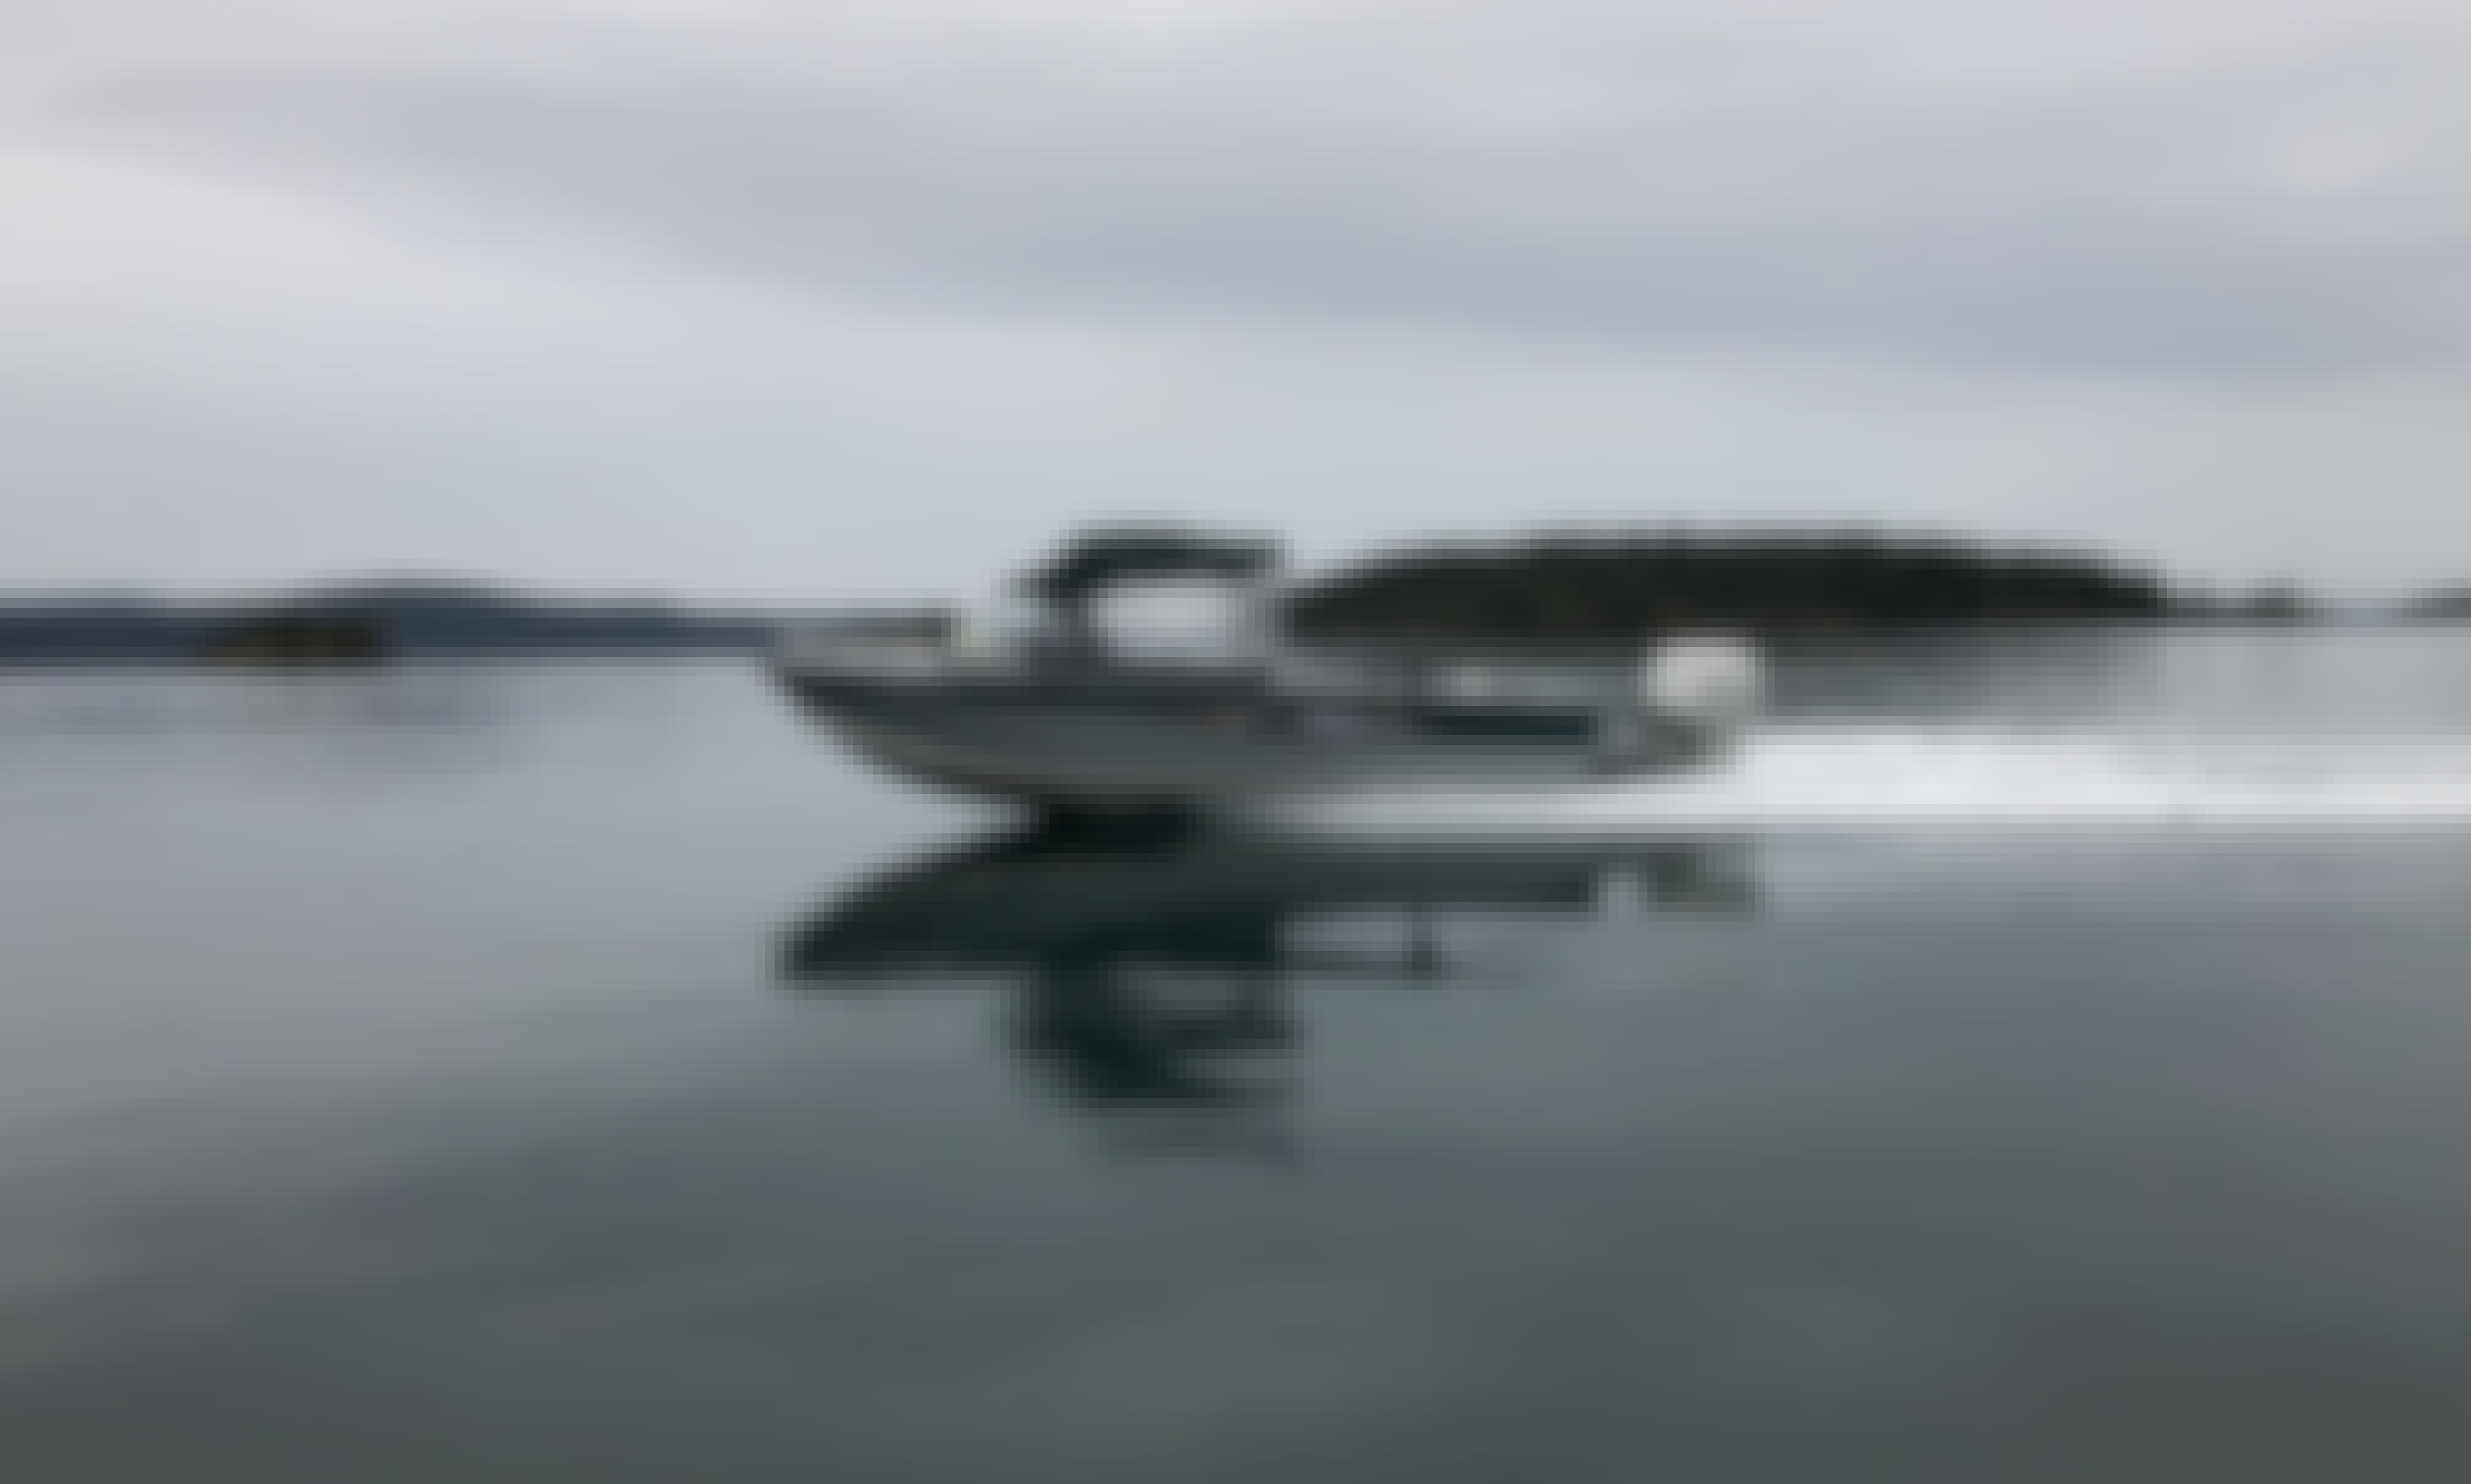 Be your own Captain of this 22' Smoker Craft Powerboat in Friday Harbor